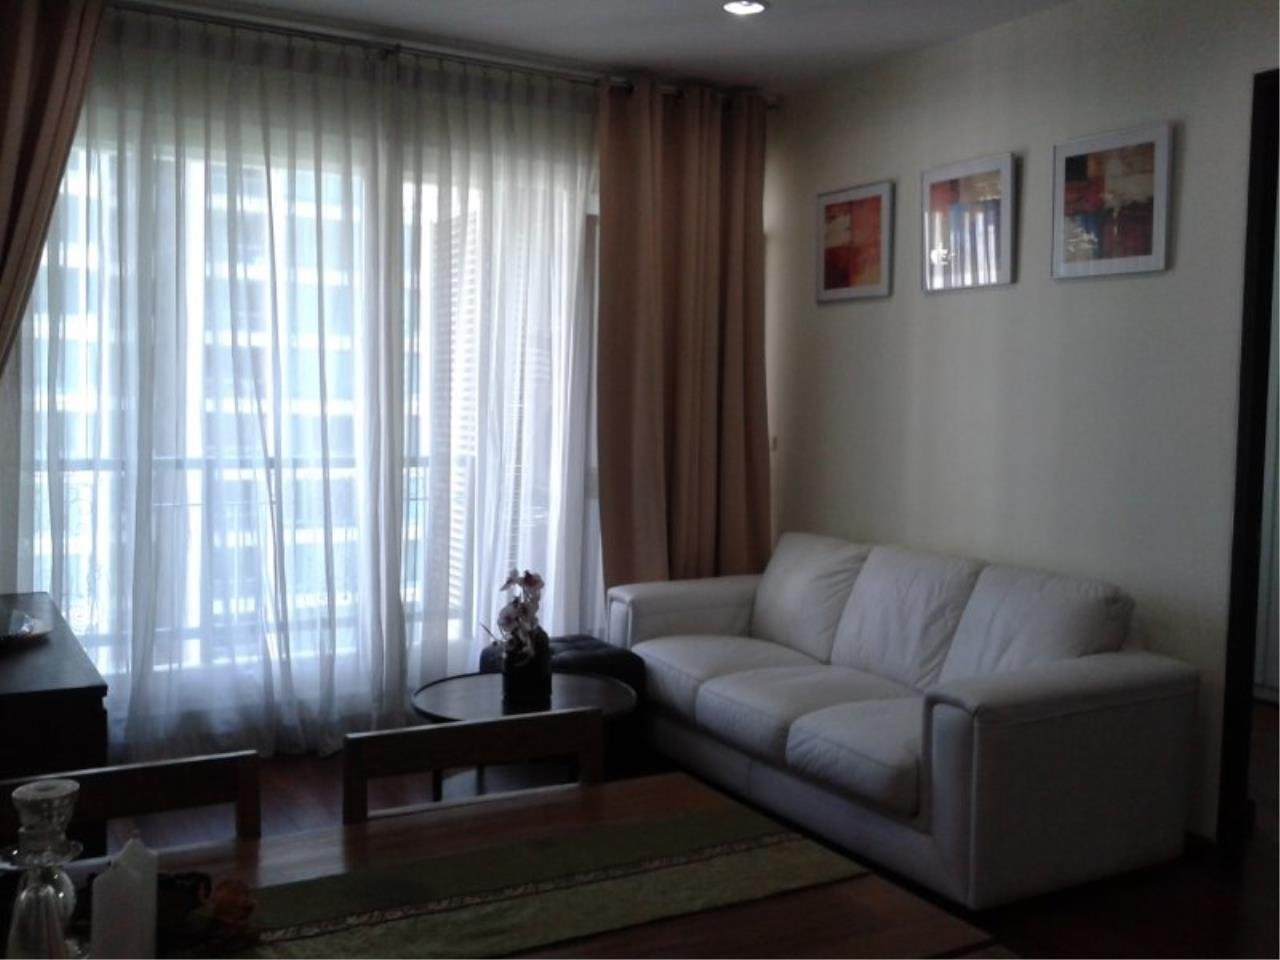 Piri Property Agency's Comfort 2 Bedrooms in The Address Chidlom Condo for rent 3